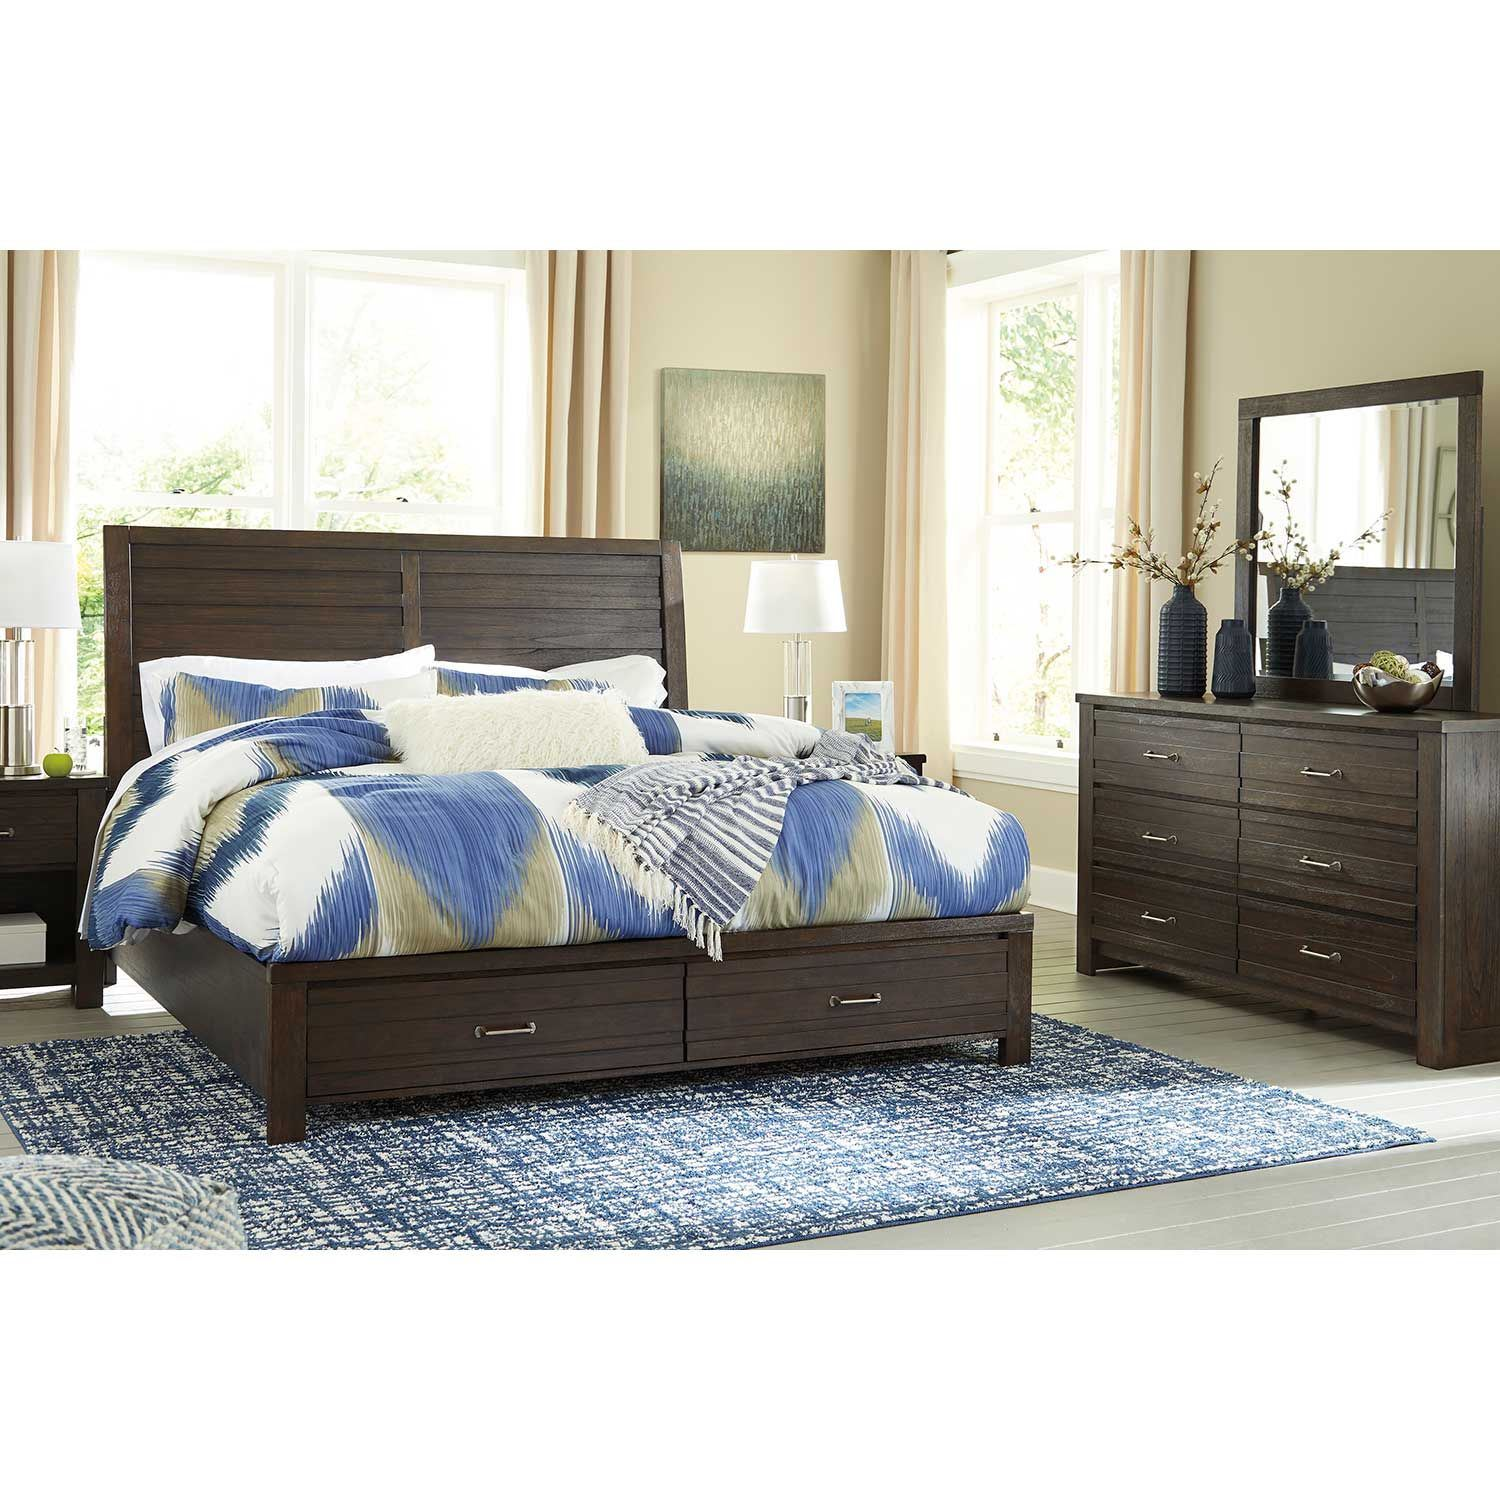 Picture of Darbry Queen Storage Bed